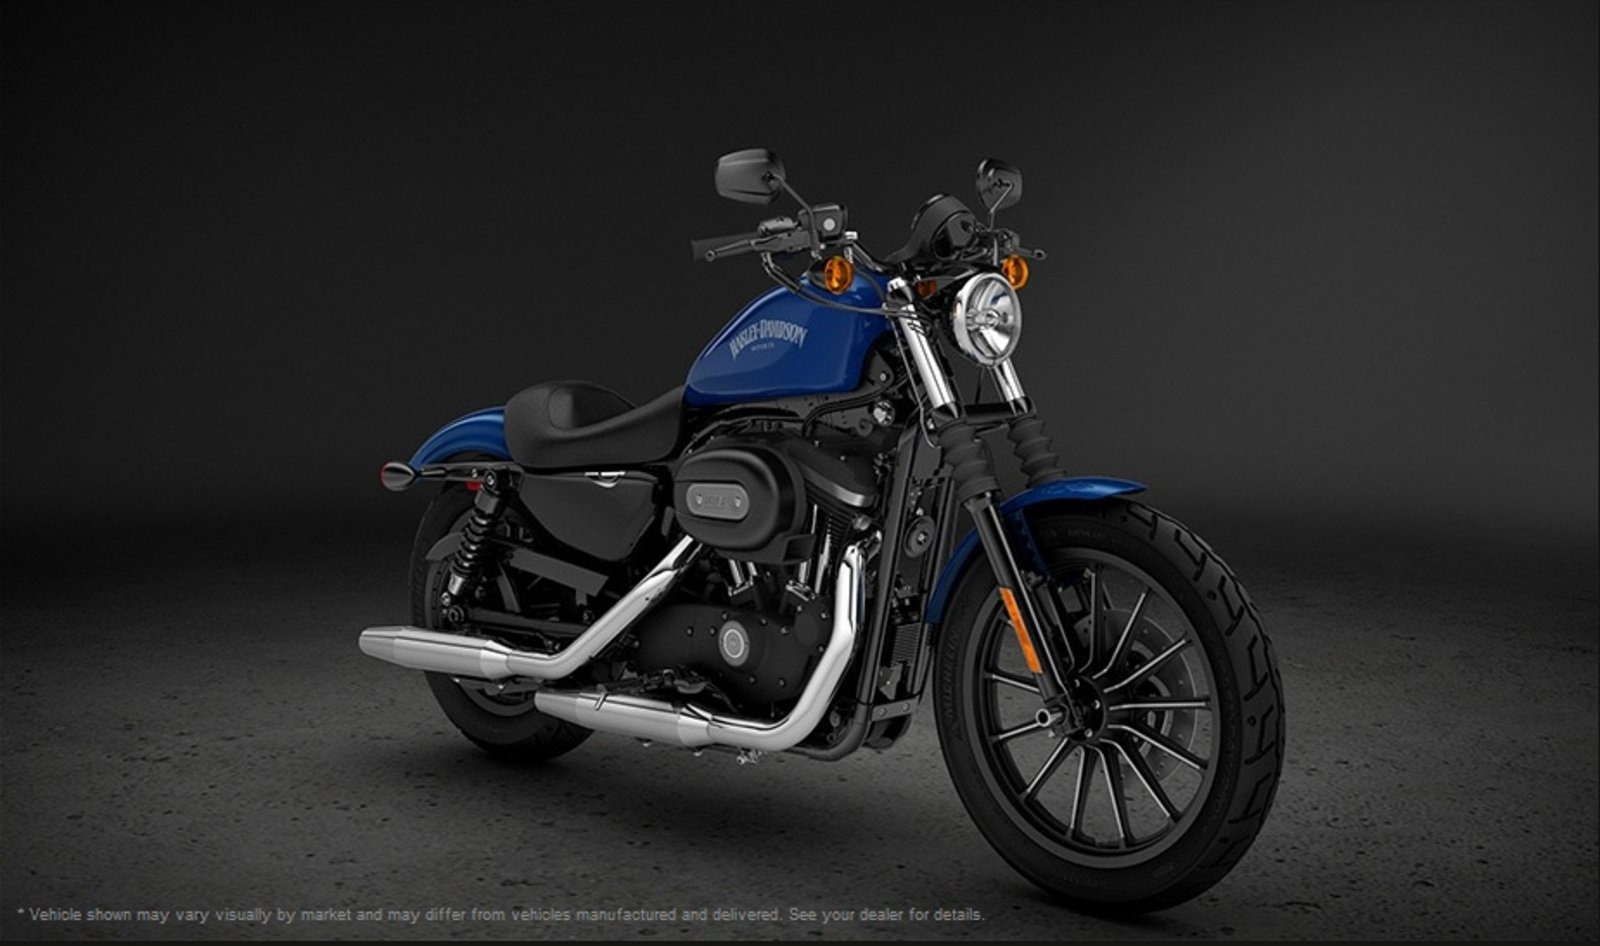 Harley Davidson Sportster Reviews Specs Prices Photos And Videos 2010 F150 Fuel Filter 2013 Iron 833